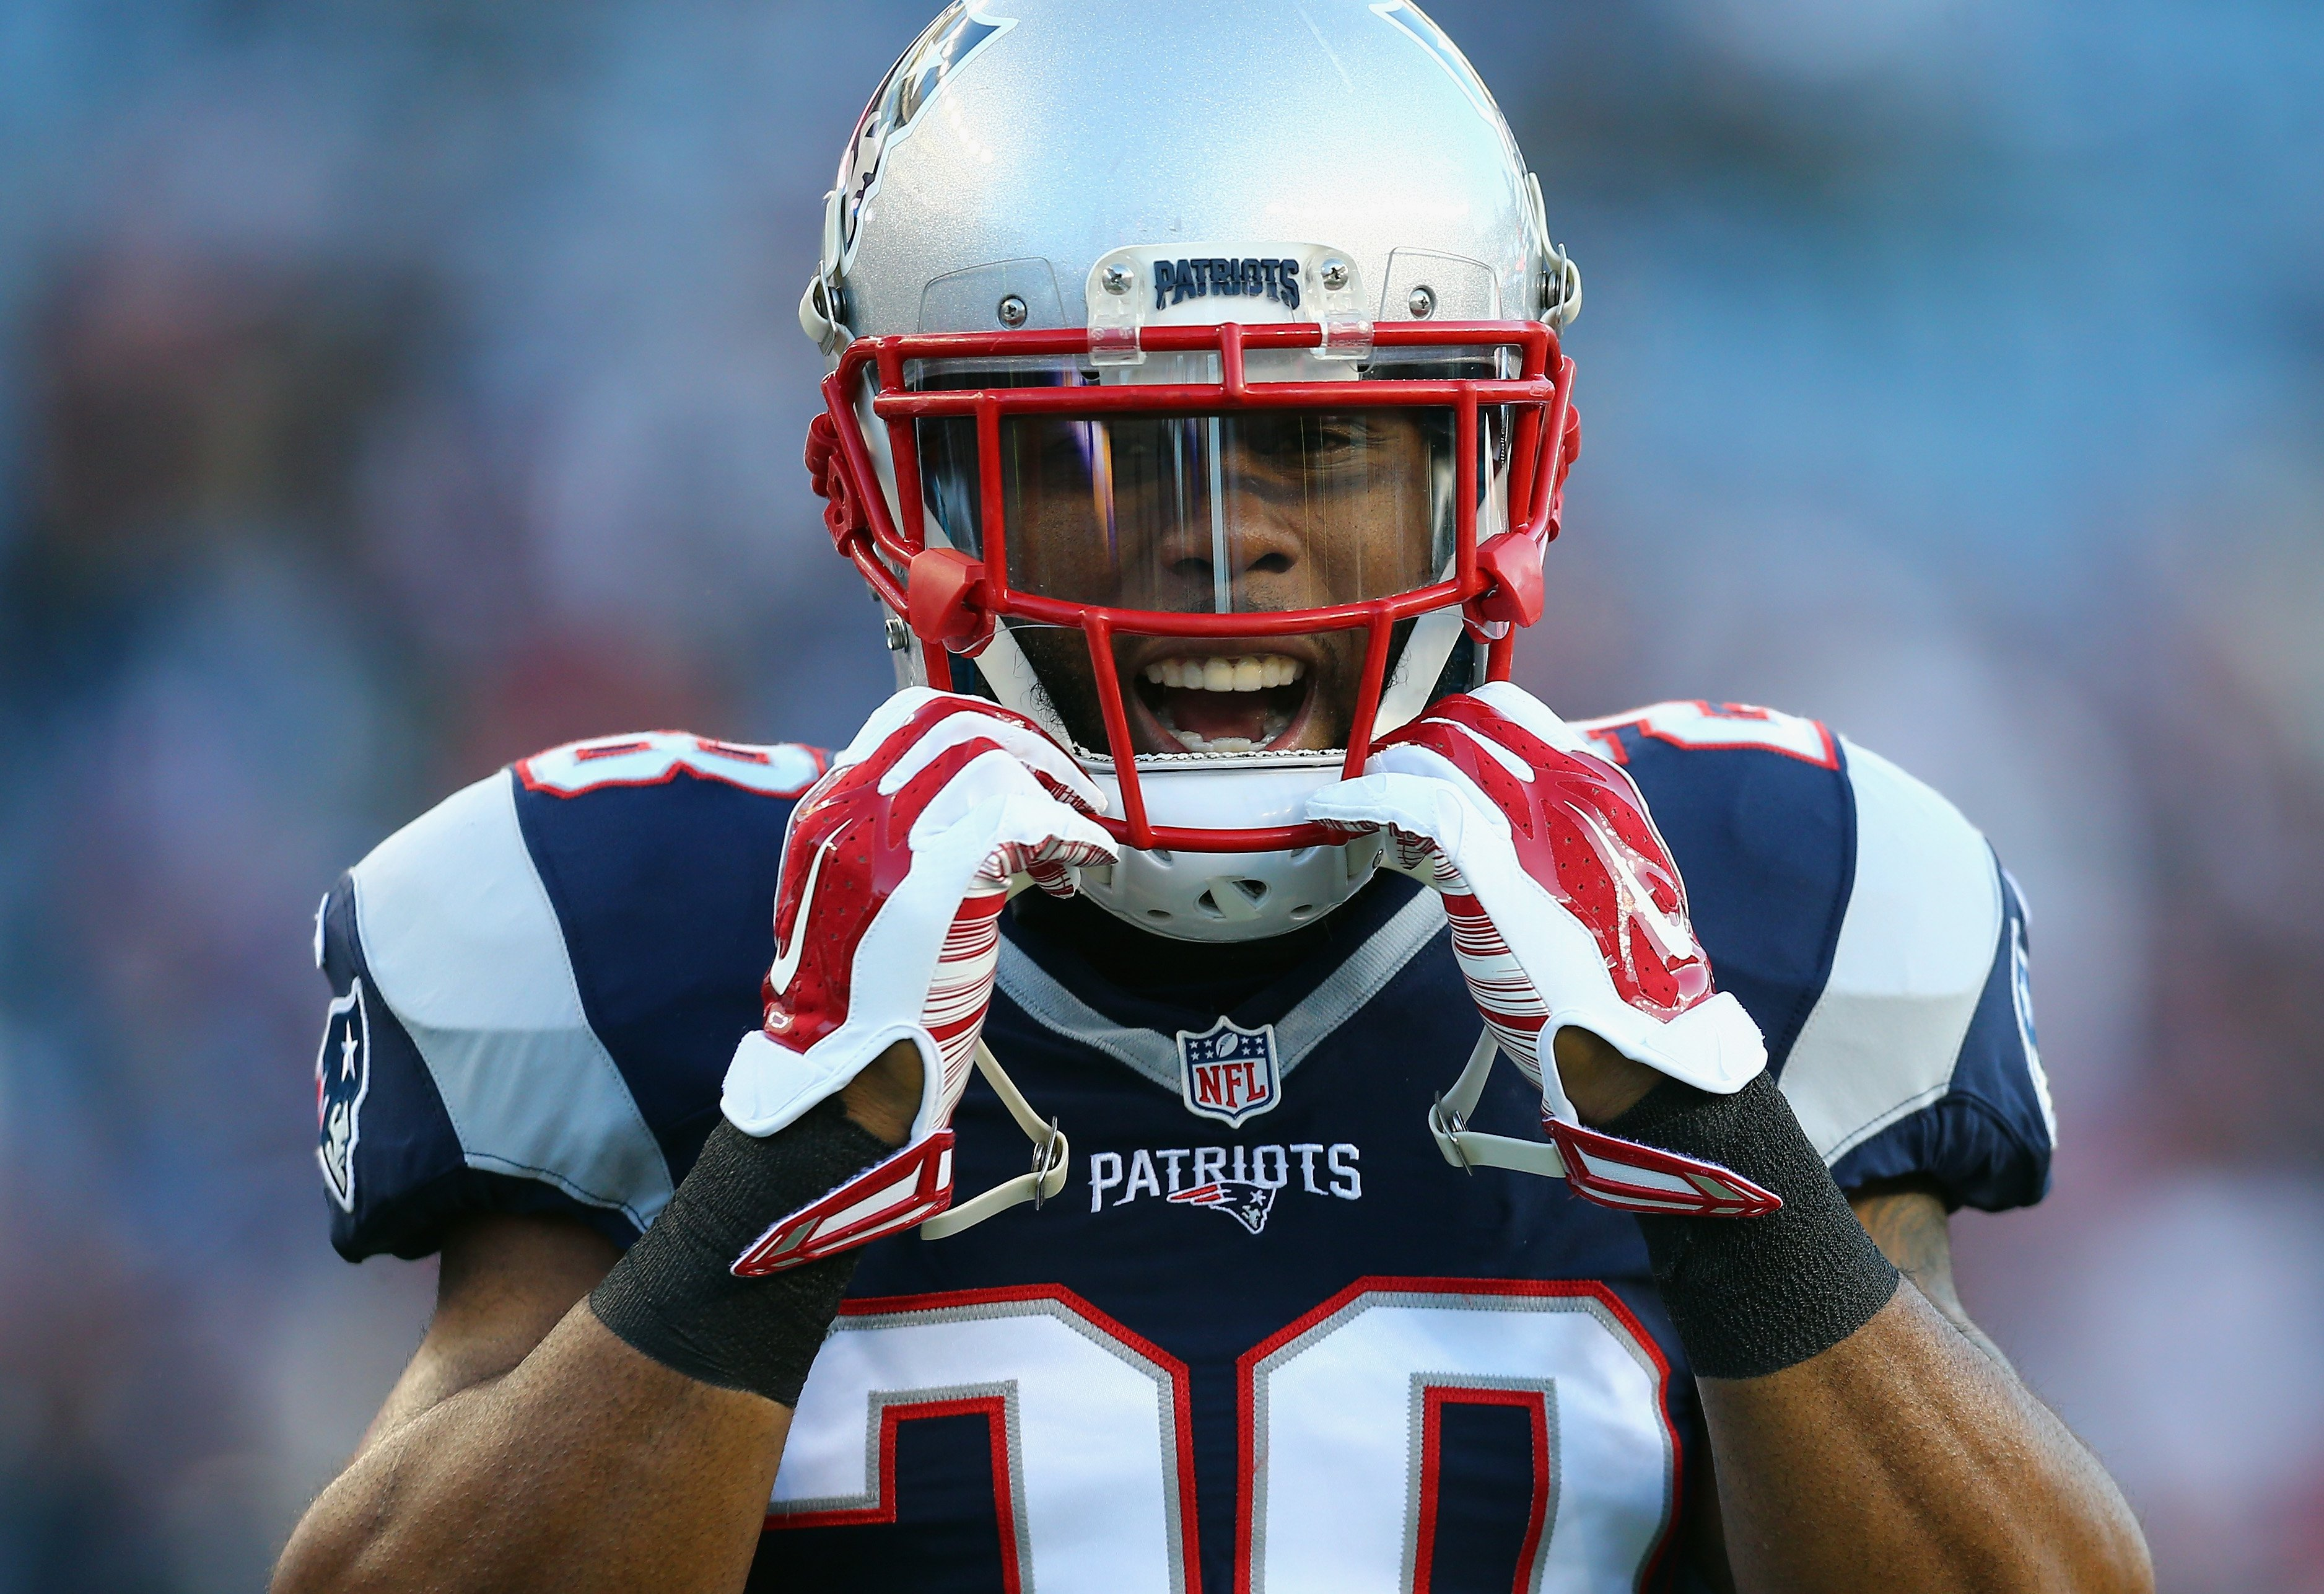 James White of the New England Patriots during warm ups prior to the AFC Divisional Playoff Game against the Kansas City Chiefs at Gillette Stadium on January 16, 2016 in Foxboro, Massachusetts. | Source: Getty Images